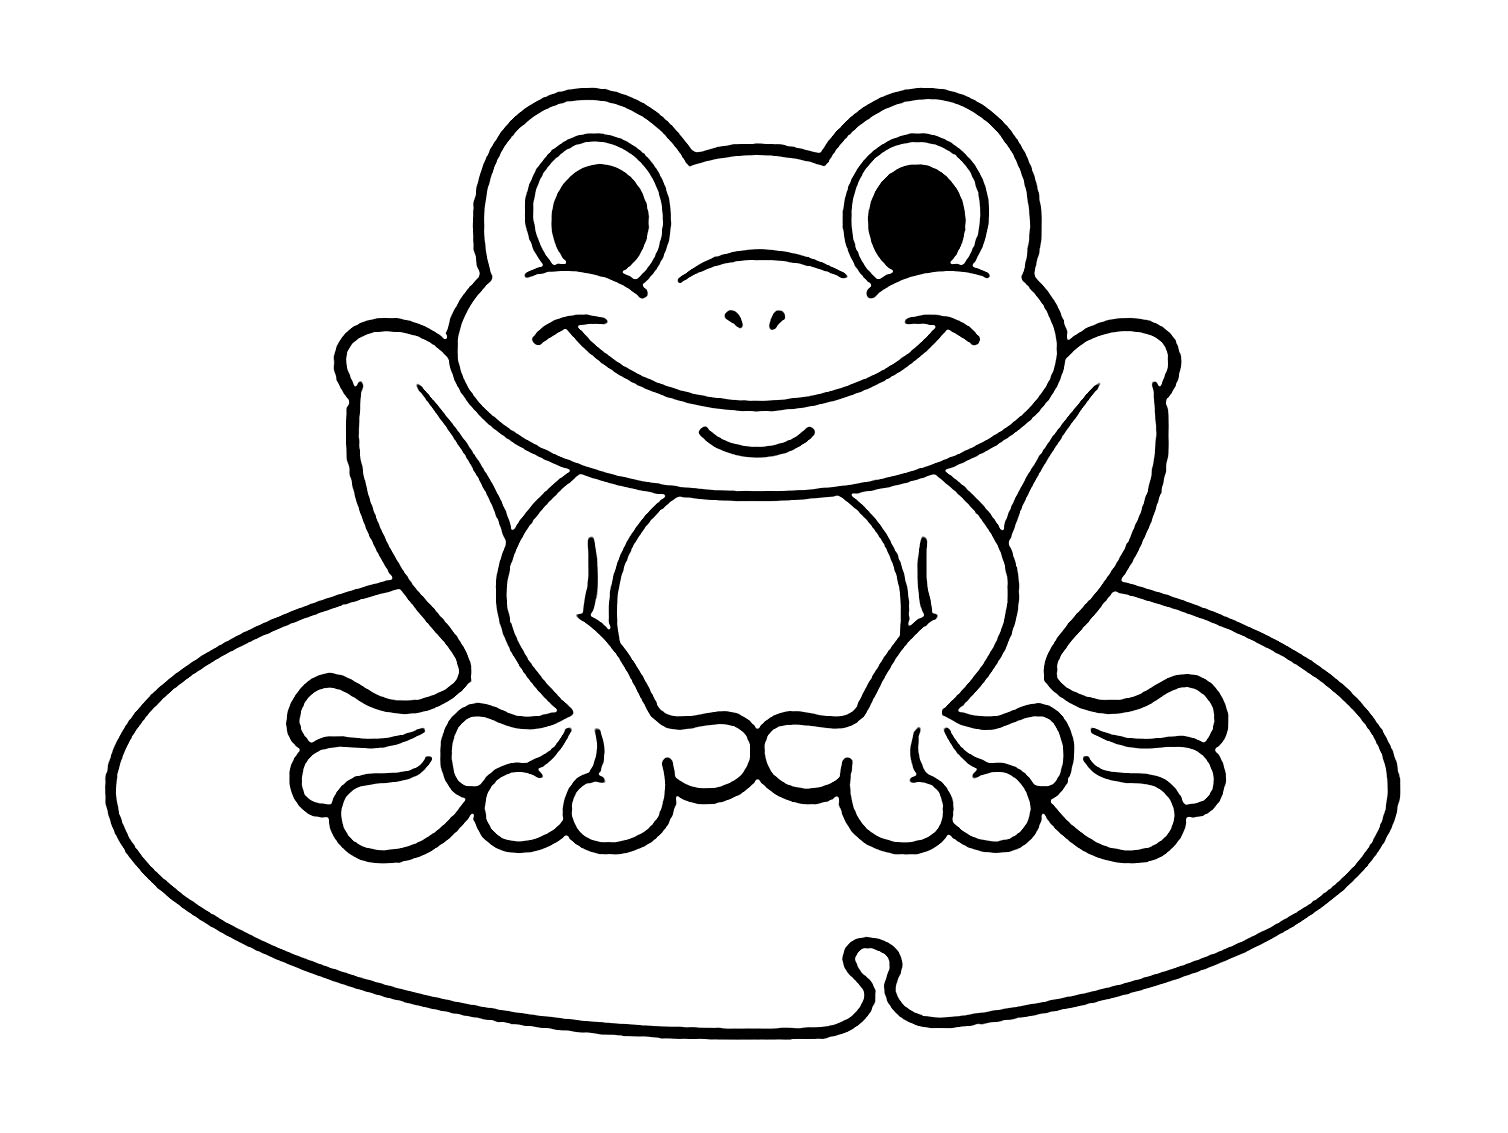 pictures of frogs to color frogs to print for free frogs kids coloring pages pictures of color frogs to